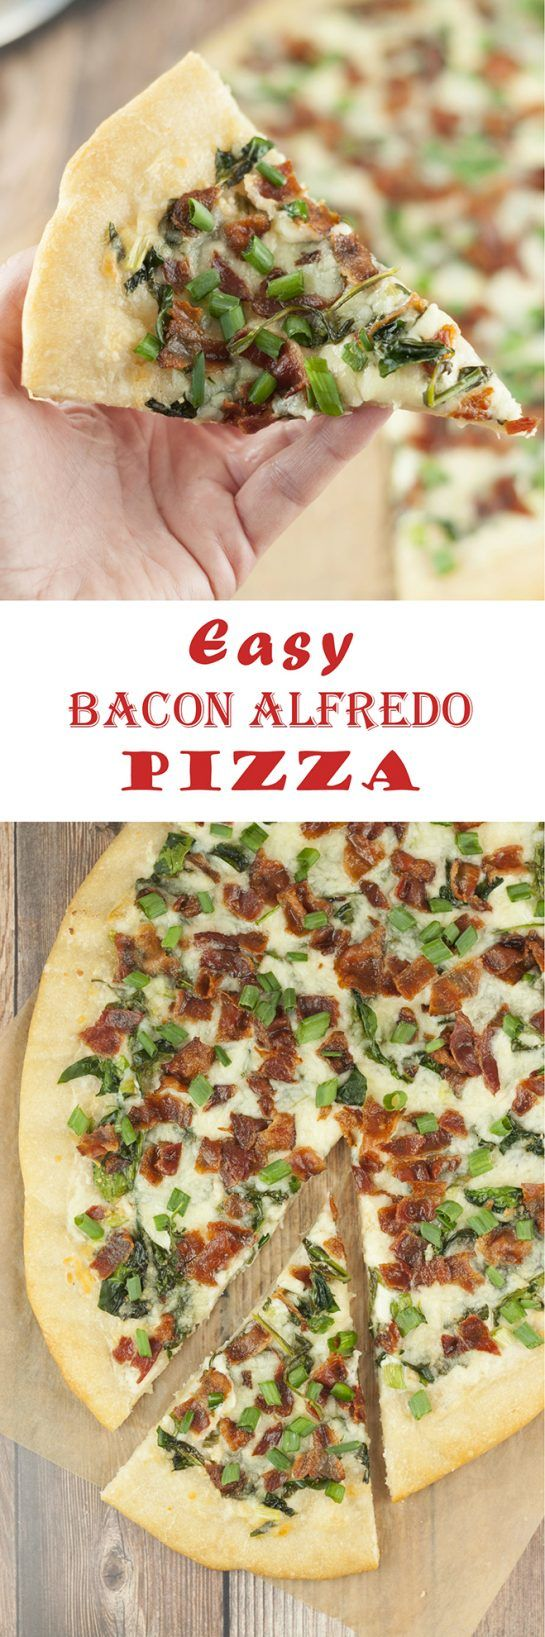 Switch up family pizza night with this easy Bacon Alfredo Pizza recipe! Alfredo sauce lovers will go crazy for this and each slice of this white pizza is packed with delicious toppings!